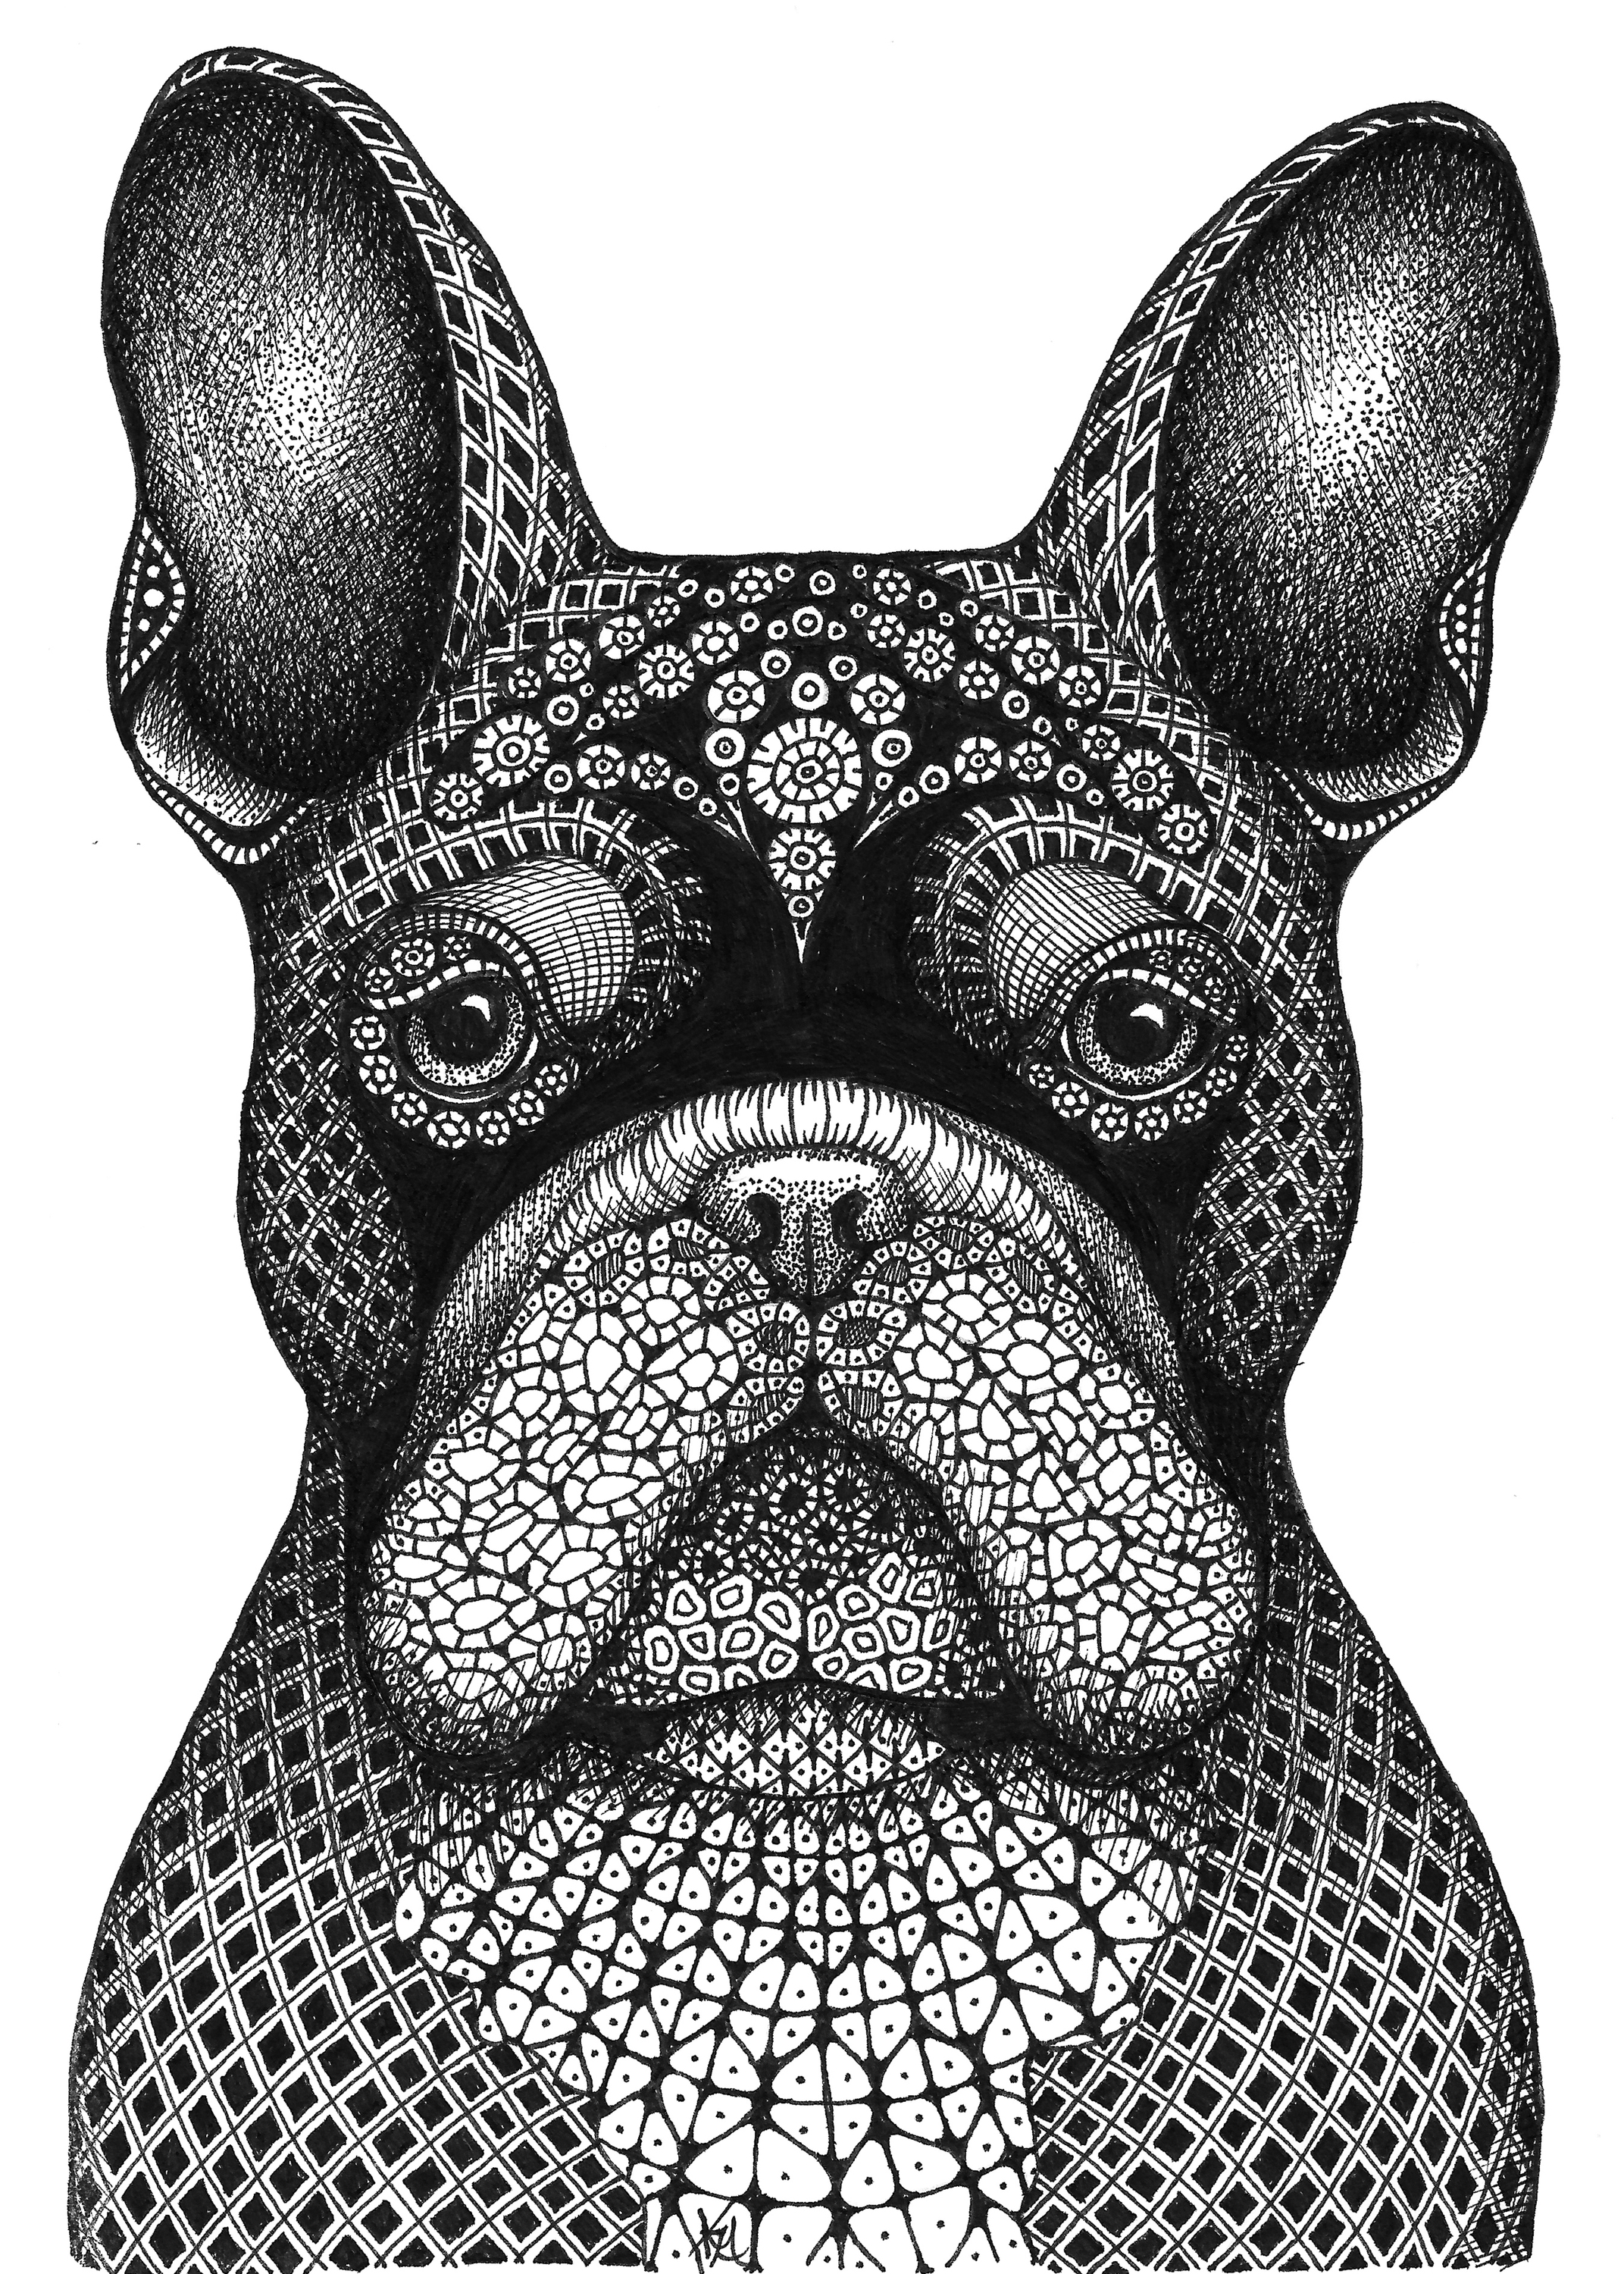 French bulldog xuj7v9